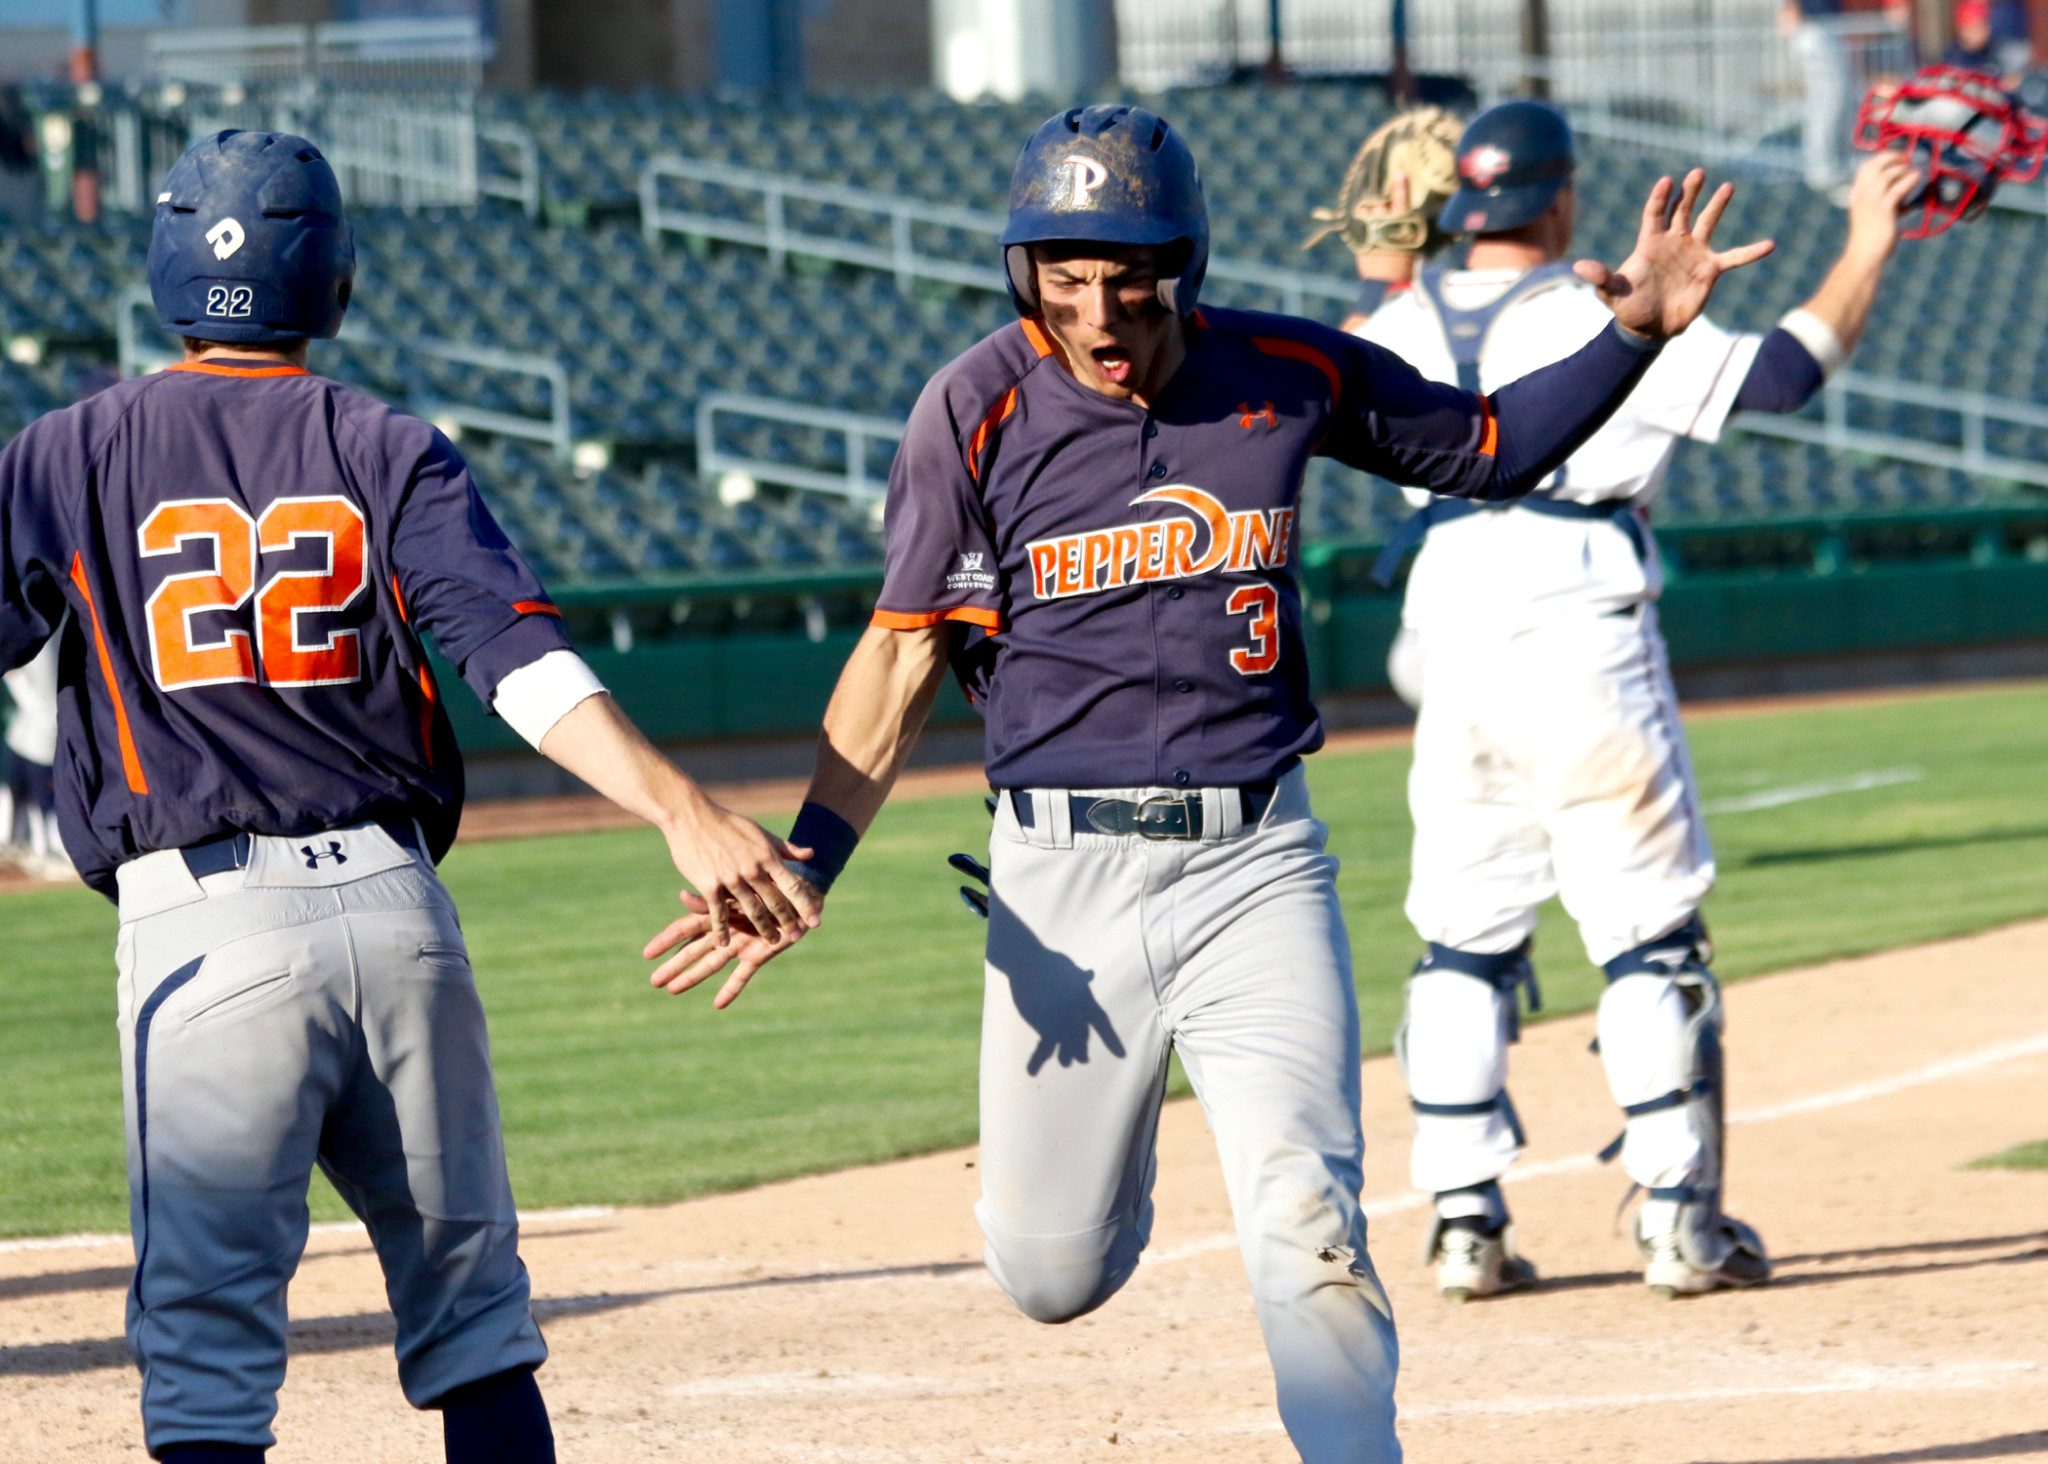 Brandon Caruso, Pepperdine